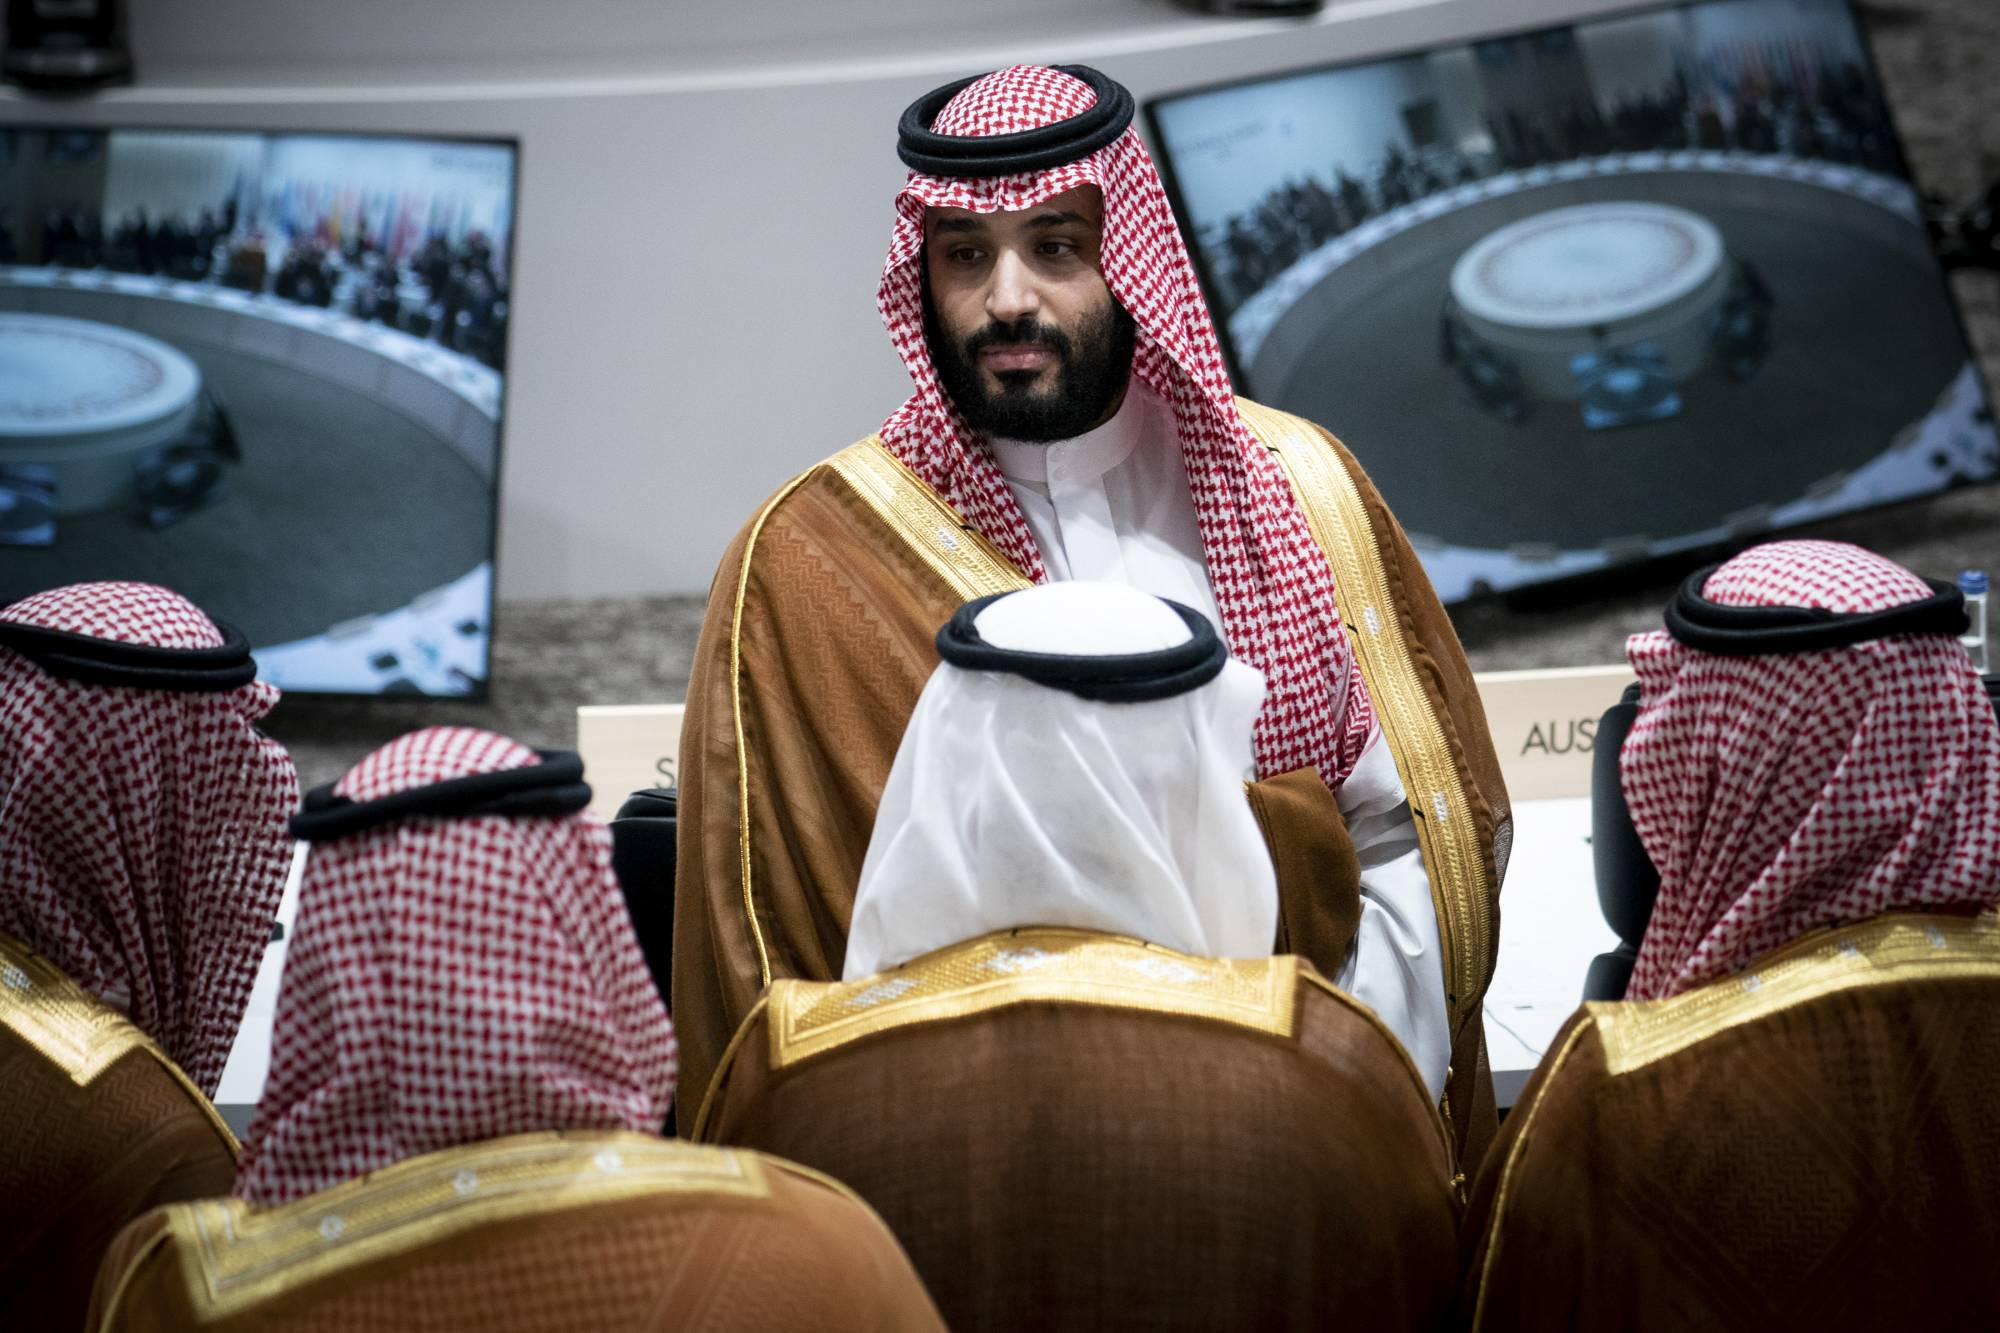 Crown Prince Mohammed bin Salman of Saudi Arabia at the G20 in Osaka in June 2019. Saudi Arabia has stepped up arrests under a loosely worded cybercrime law | ERIN SCHAFF / THE NEW YORK TIMES